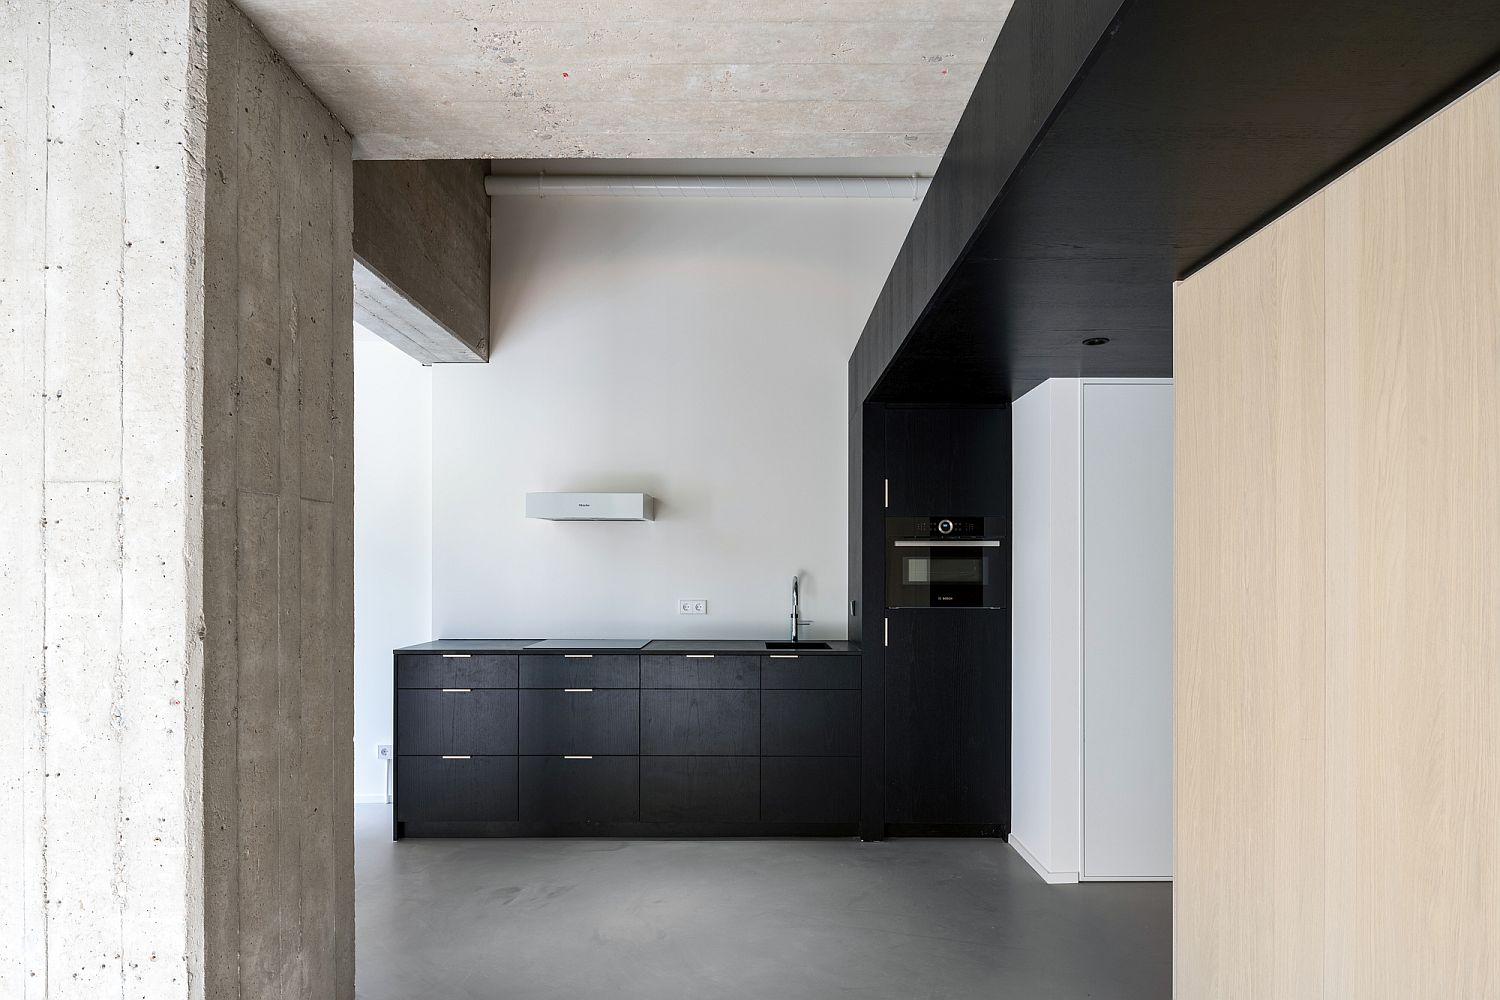 Black cabinets and shelves for the closed modern kitchen